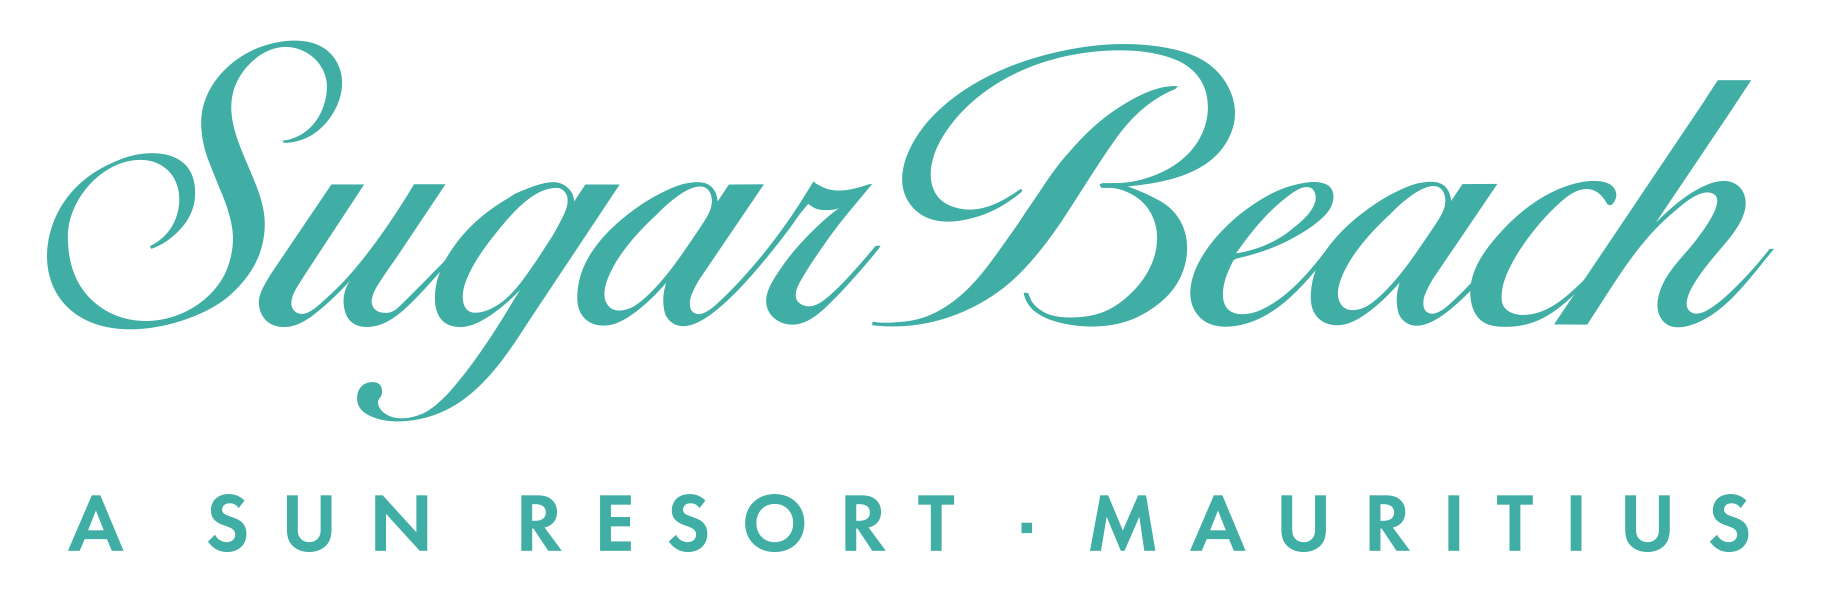 SUGARBEACH_LOGO_2017_RGB